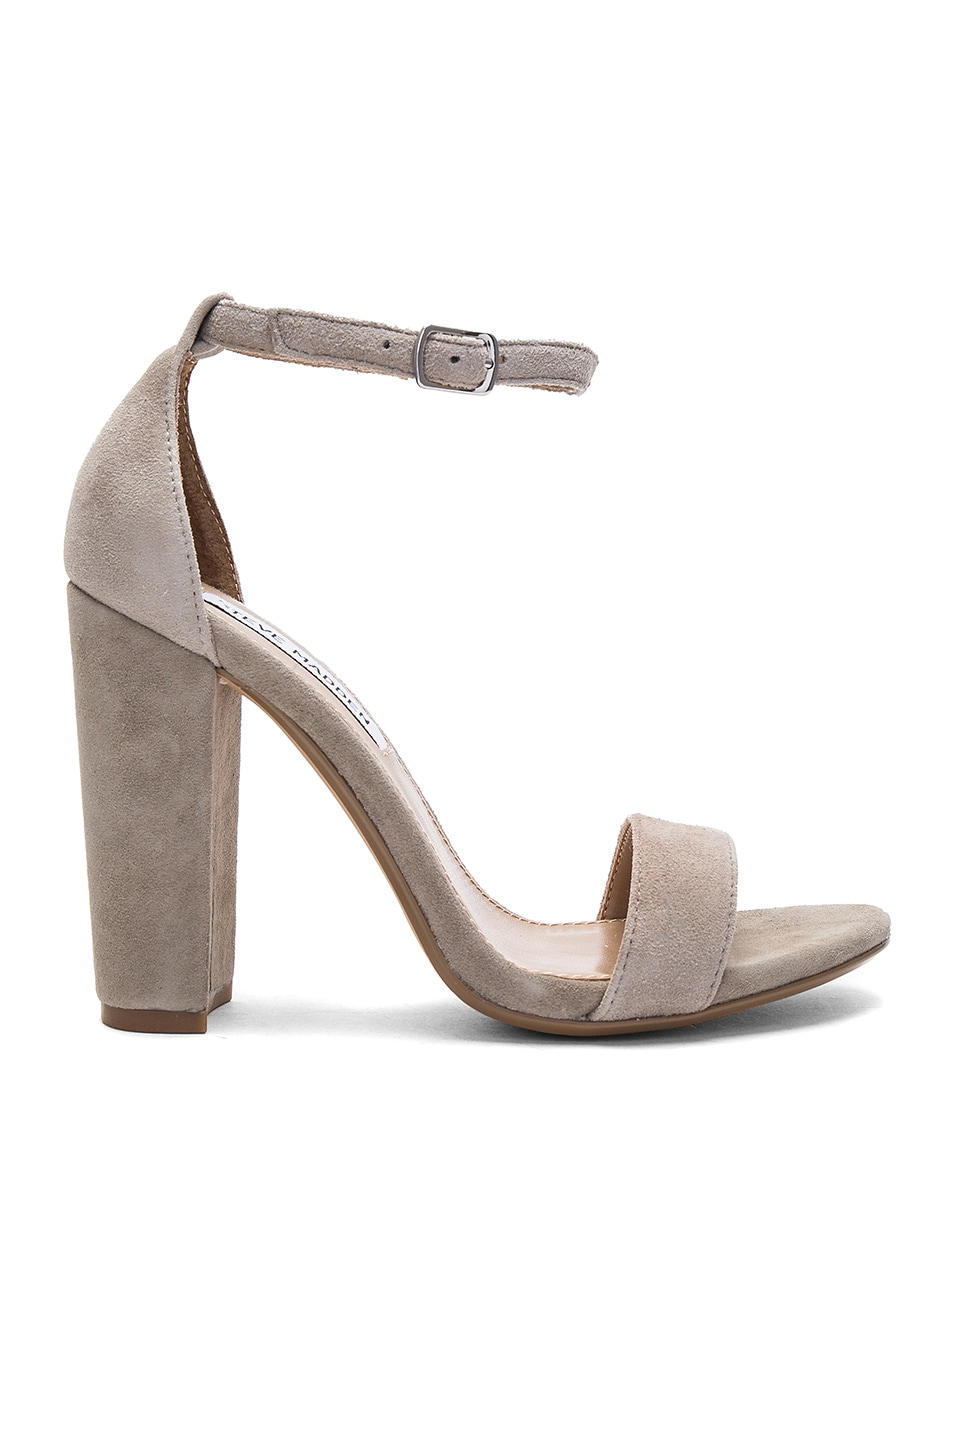 Steve Madden Carrson Heel in Taupe Suede